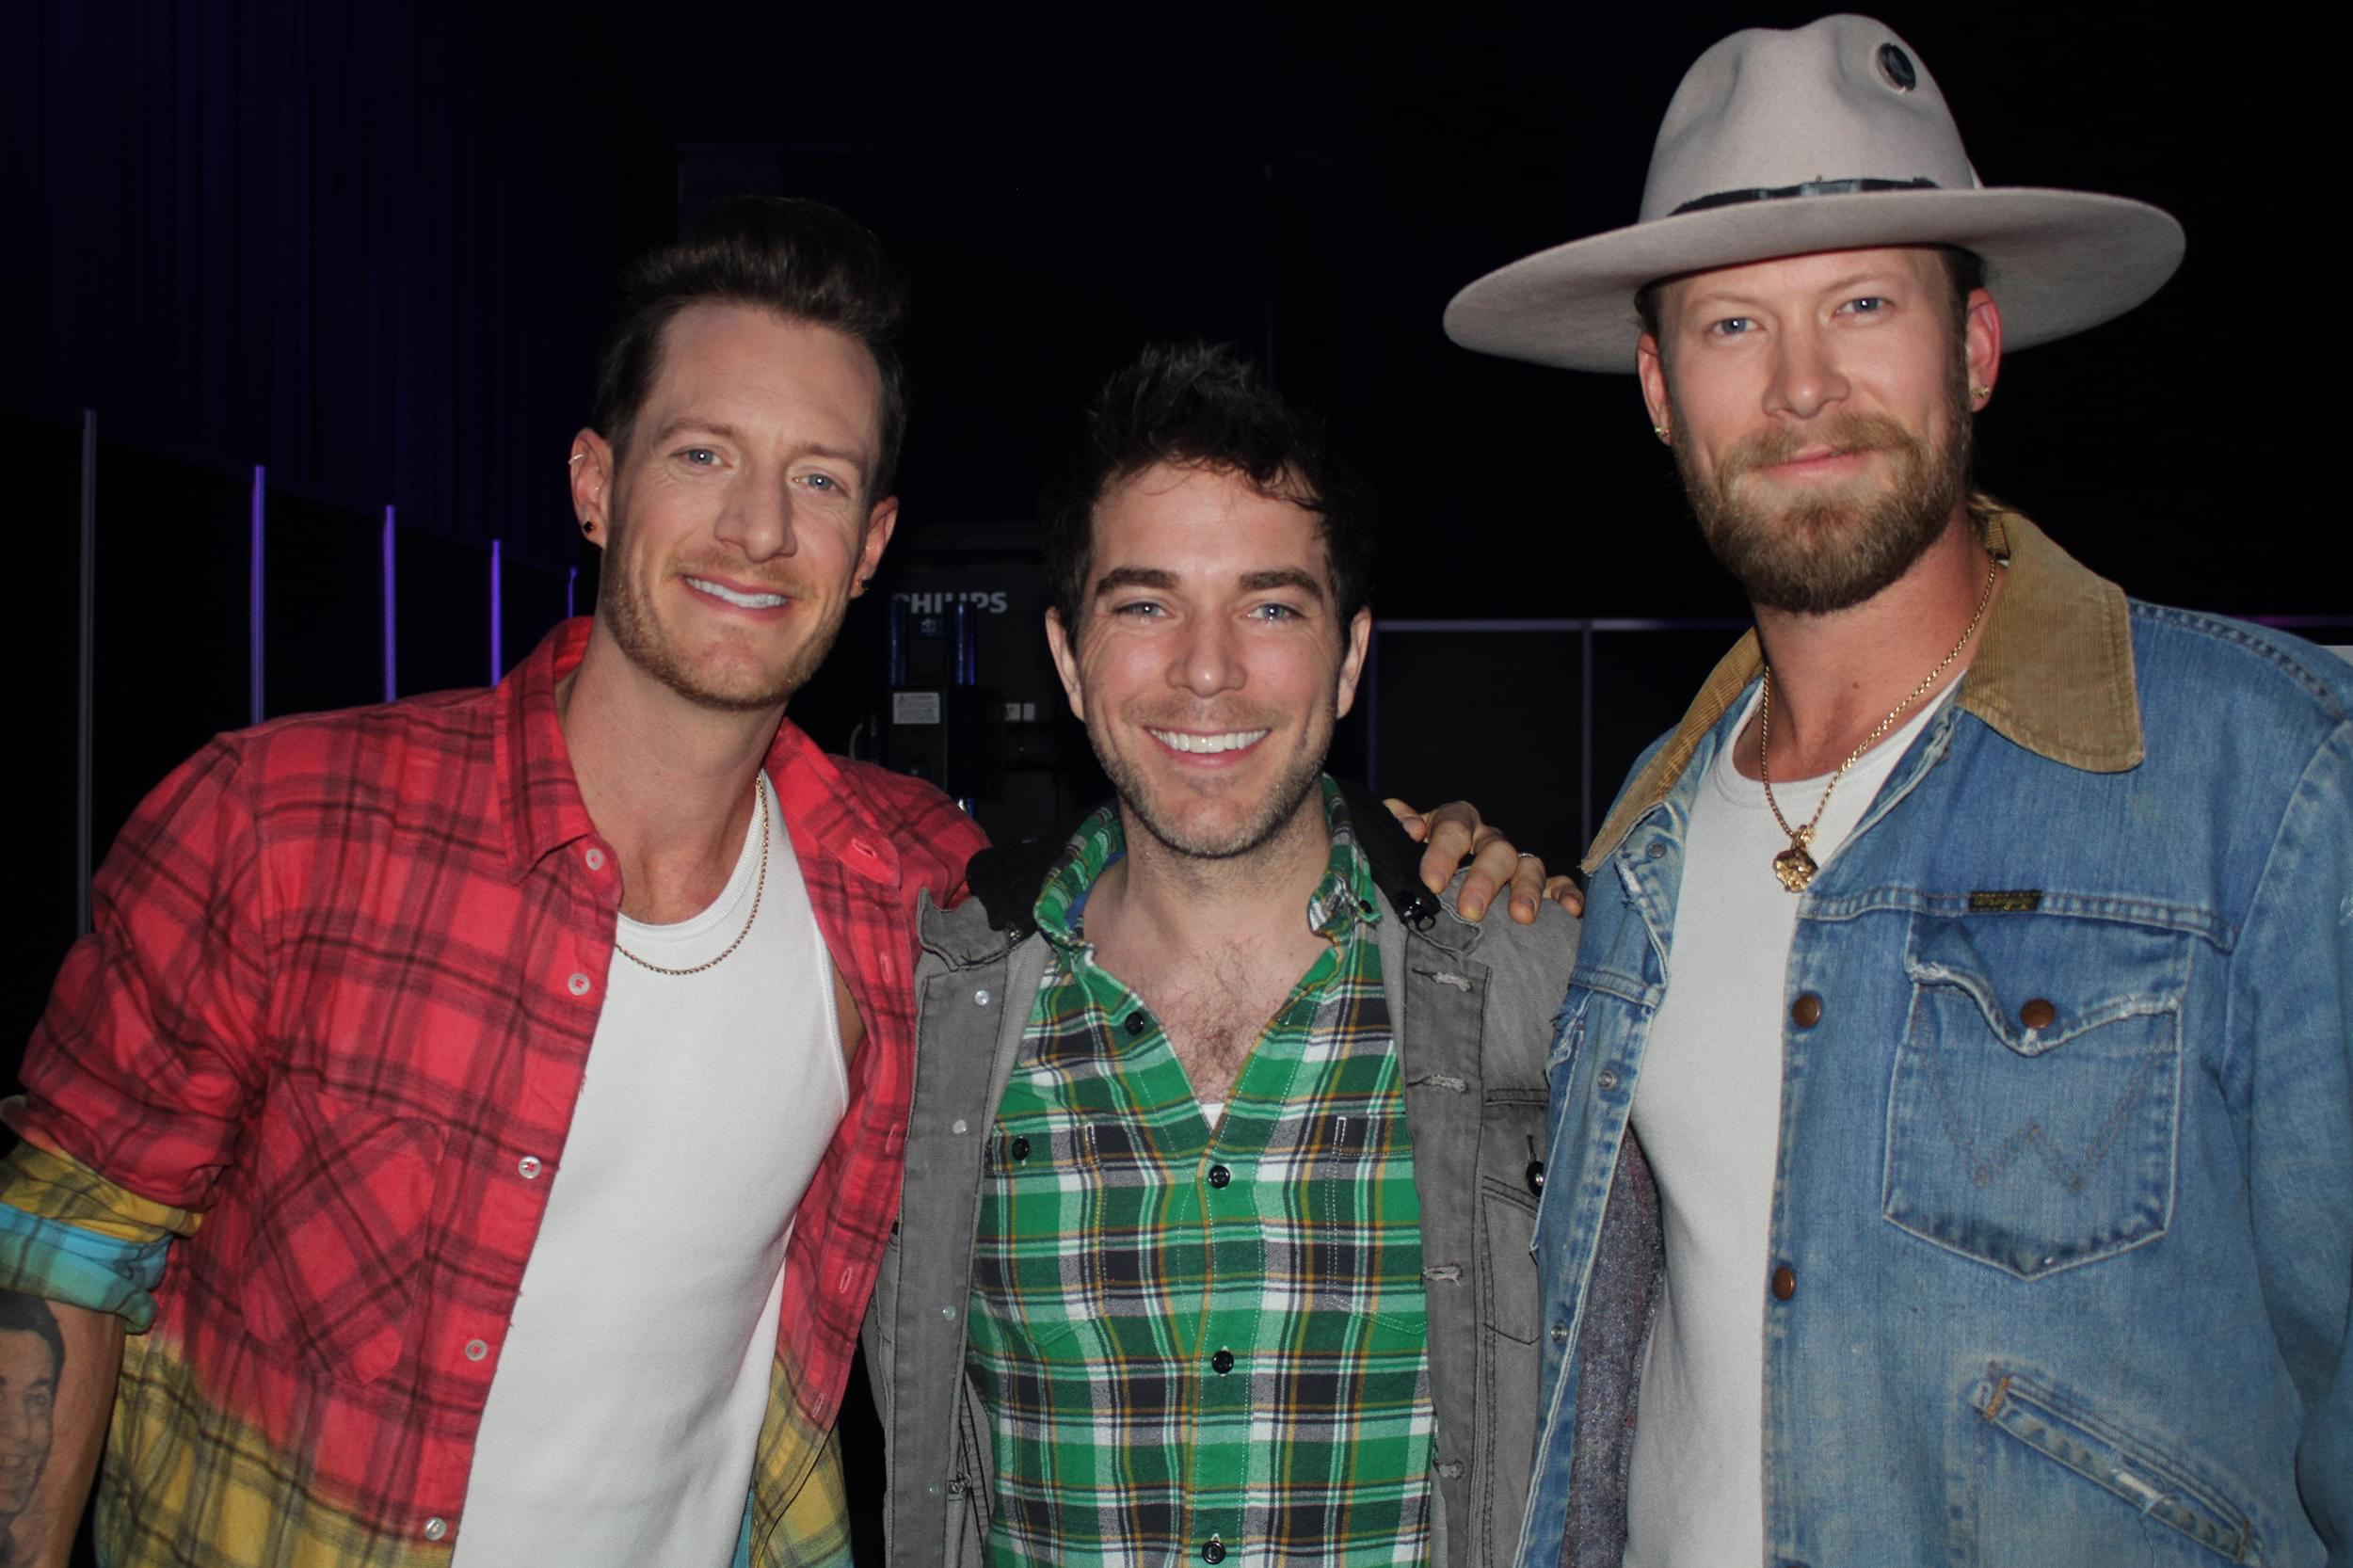 Backstage at the CMA Awards Rehearsals with FGL, Luke Combs, Chris Janson & Old Dominion